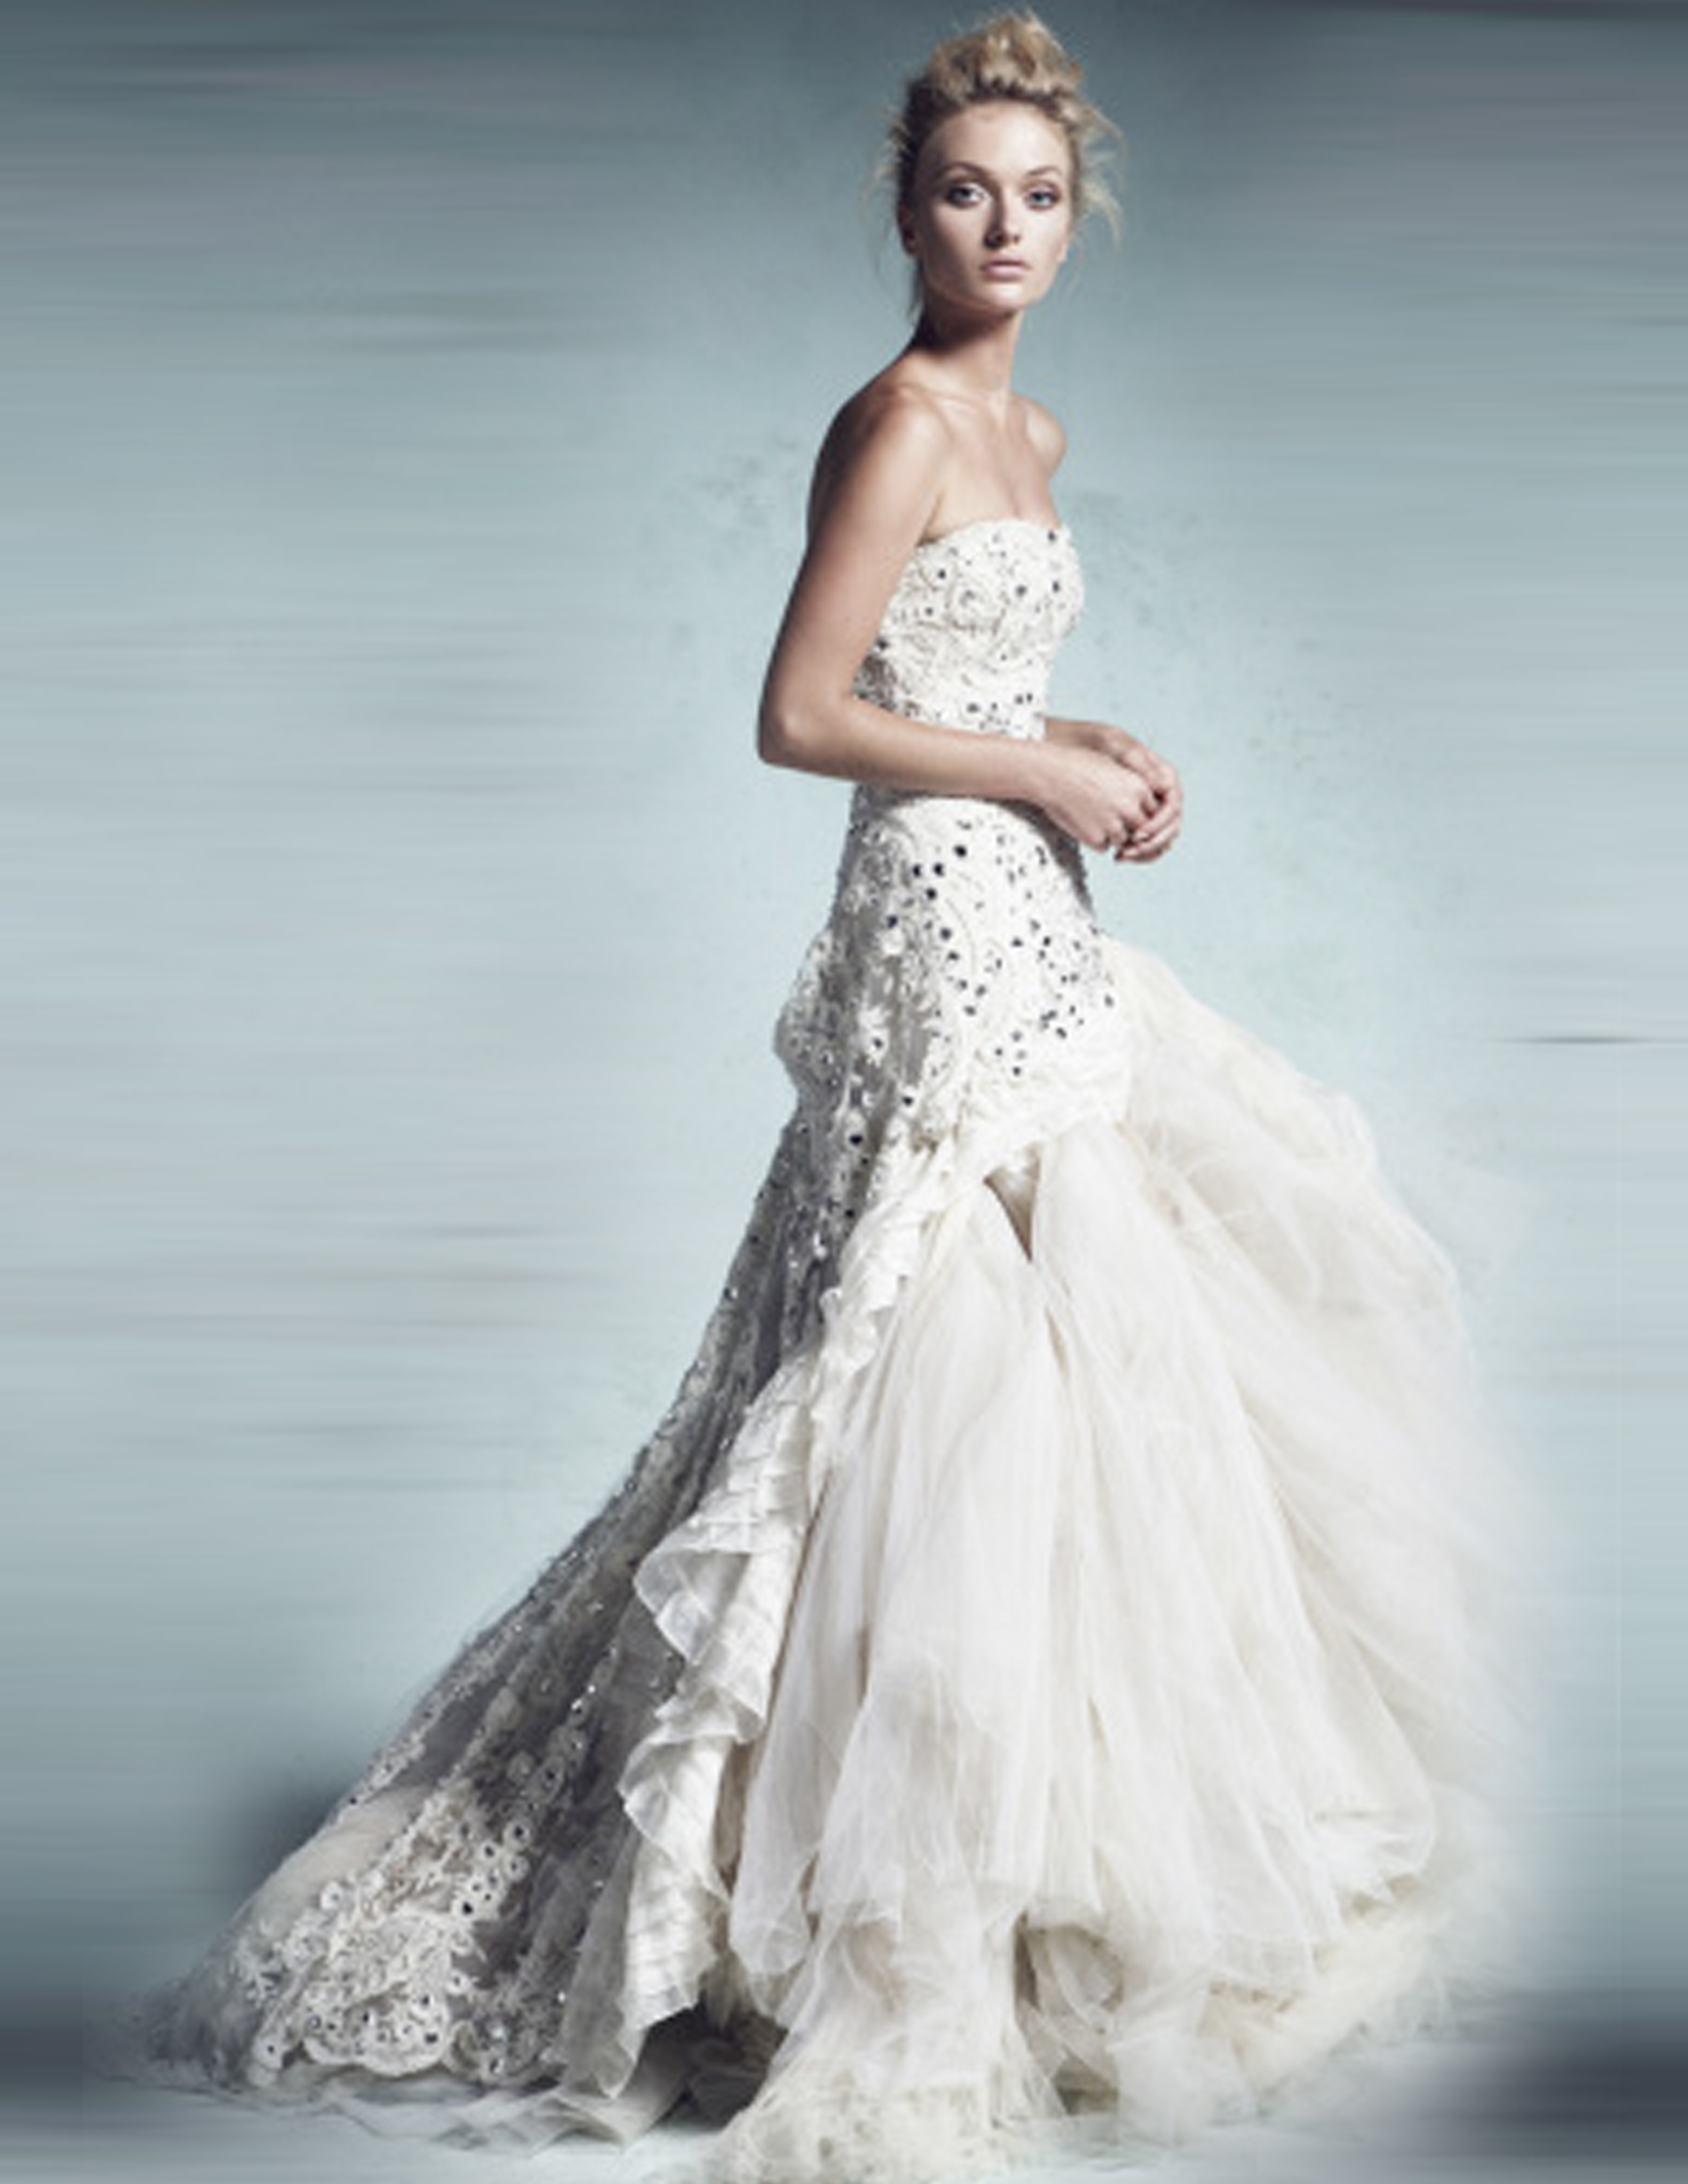 The Whimsical Wedding Gowns Of Collette Dinnigan – eterneltresor.com